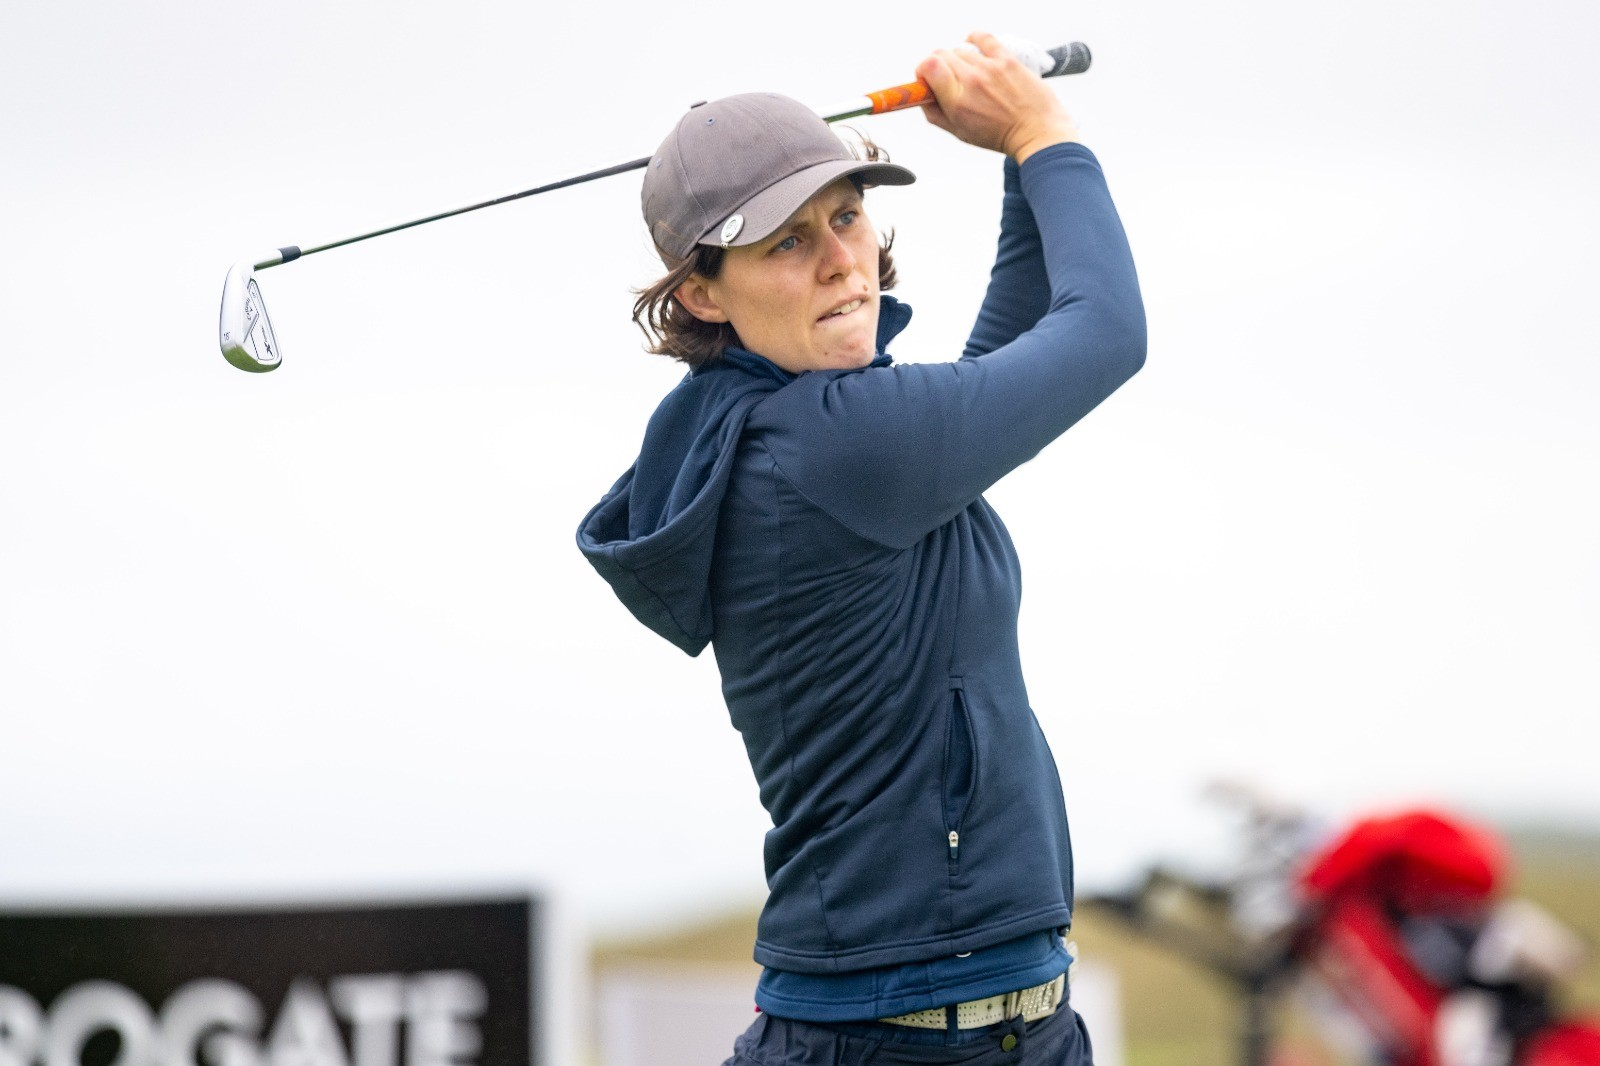 English Women's Open Stroke Play Championship day two: Bel's blitz pushes her into Wallasey lead